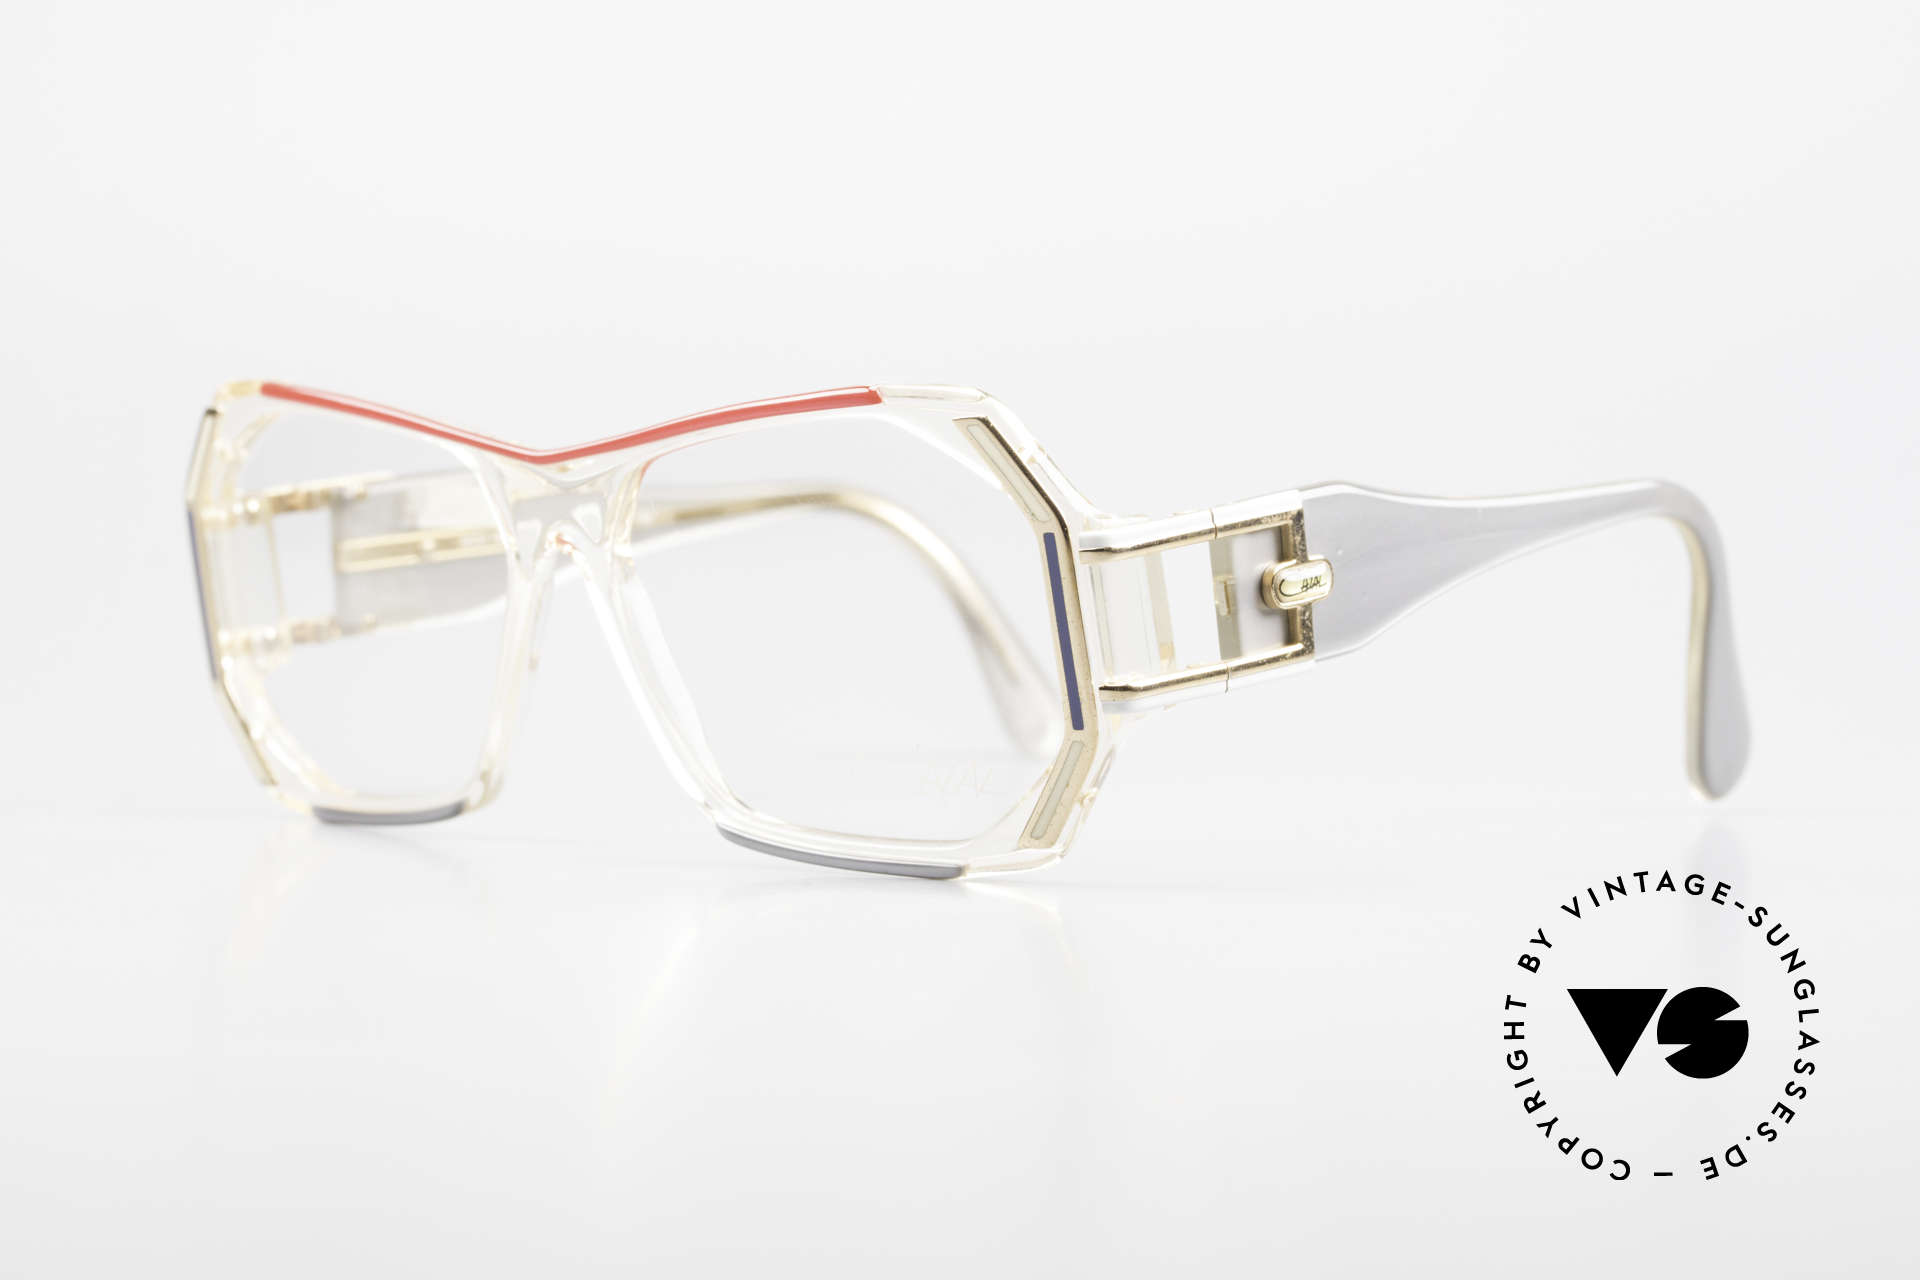 Cazal 182 80's HipHop Old School Frame, massive design by style-icon Cari Zalloni (Mr. Cazal), Made for Men and Women